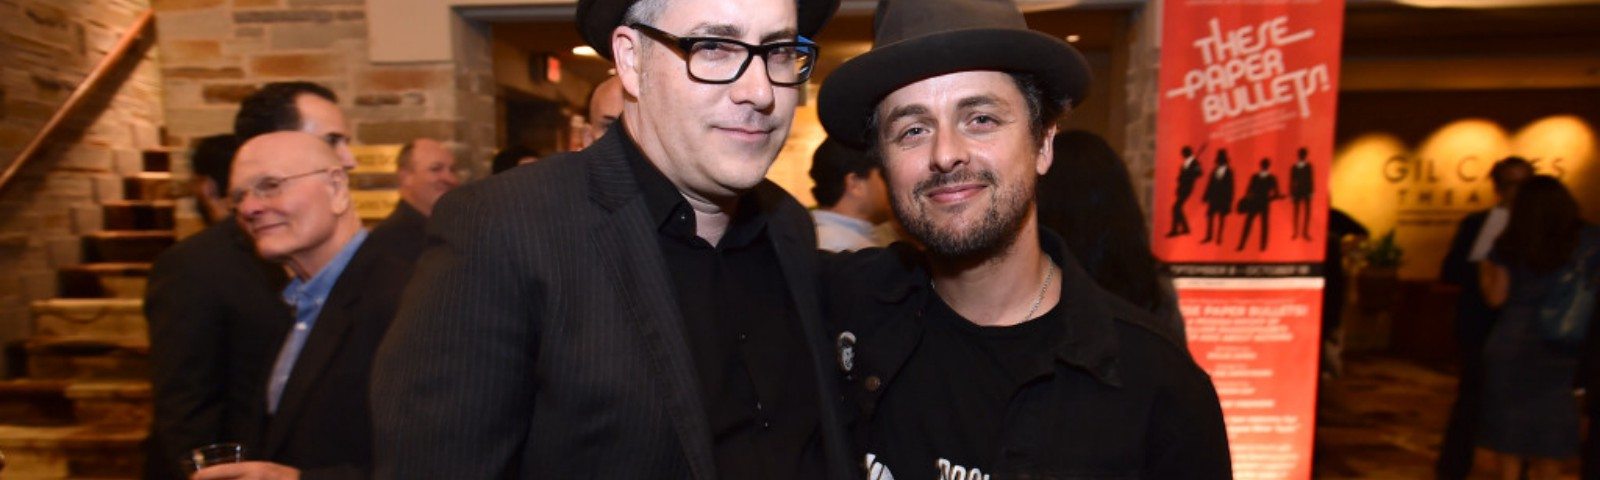 Rolin Jones, left, and Billie Joe Armstrong on Opening Night. Photo by Jordan Strauss.